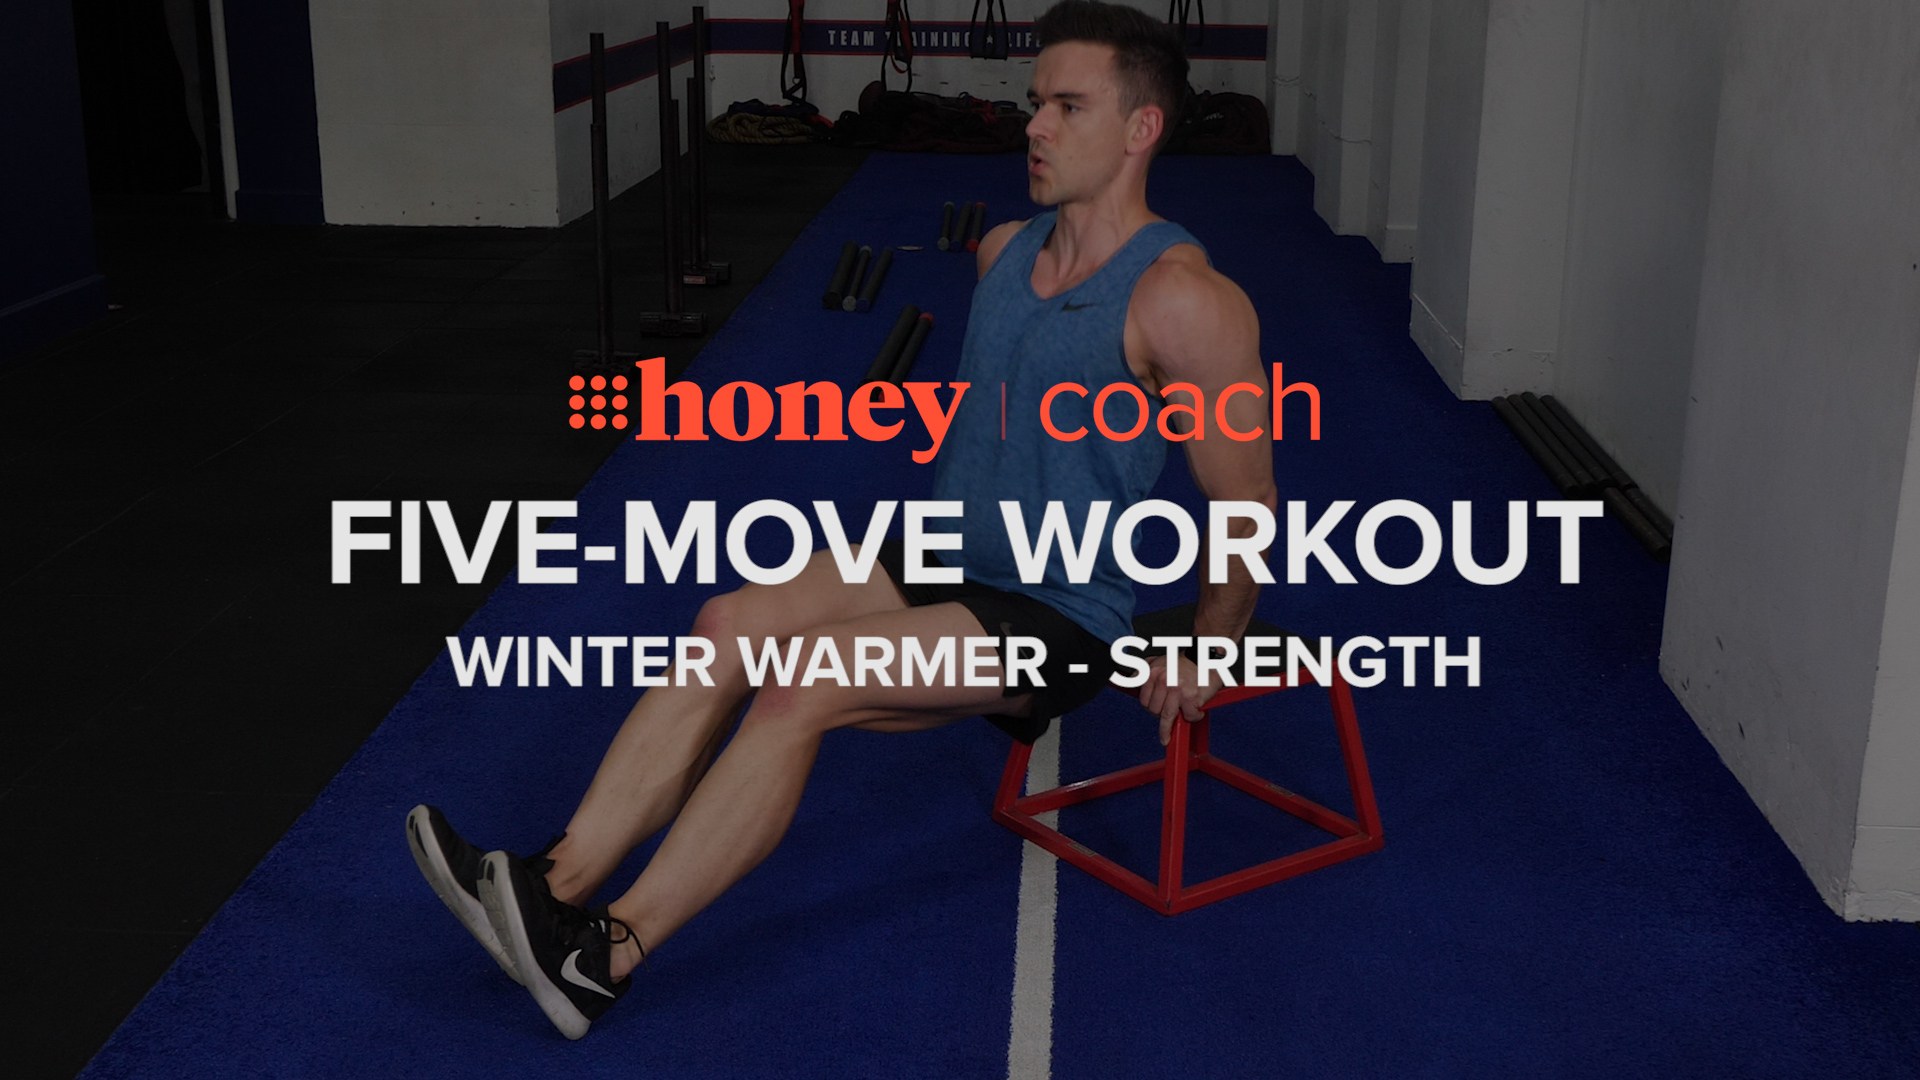 Five-move workout: Winter warmer — strength